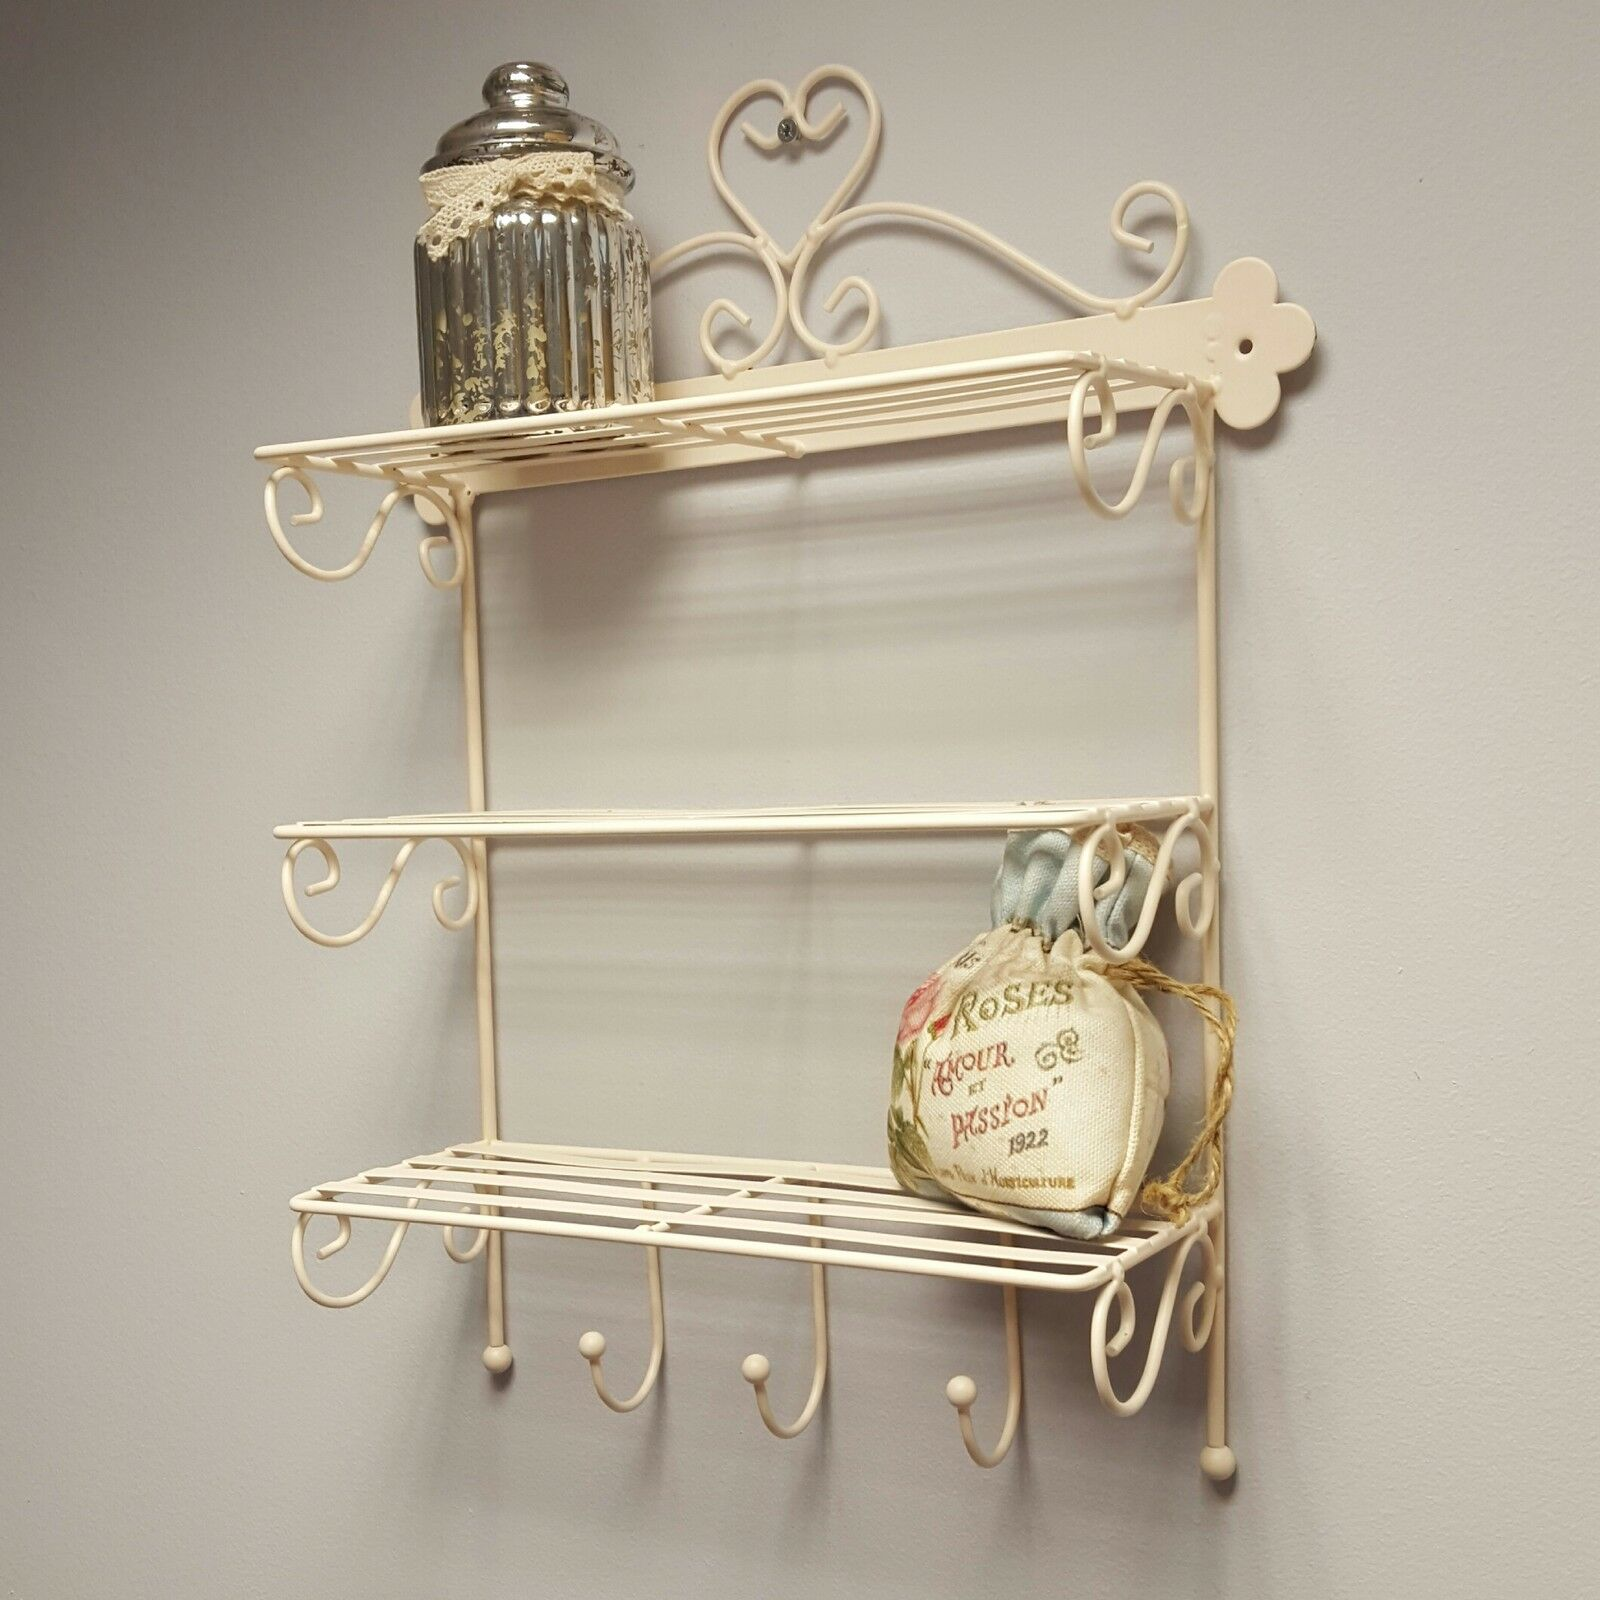 Shabby Chic Kitchen Shelves: Shabby Chic Bathroom Shelves With Simple Inspiration In